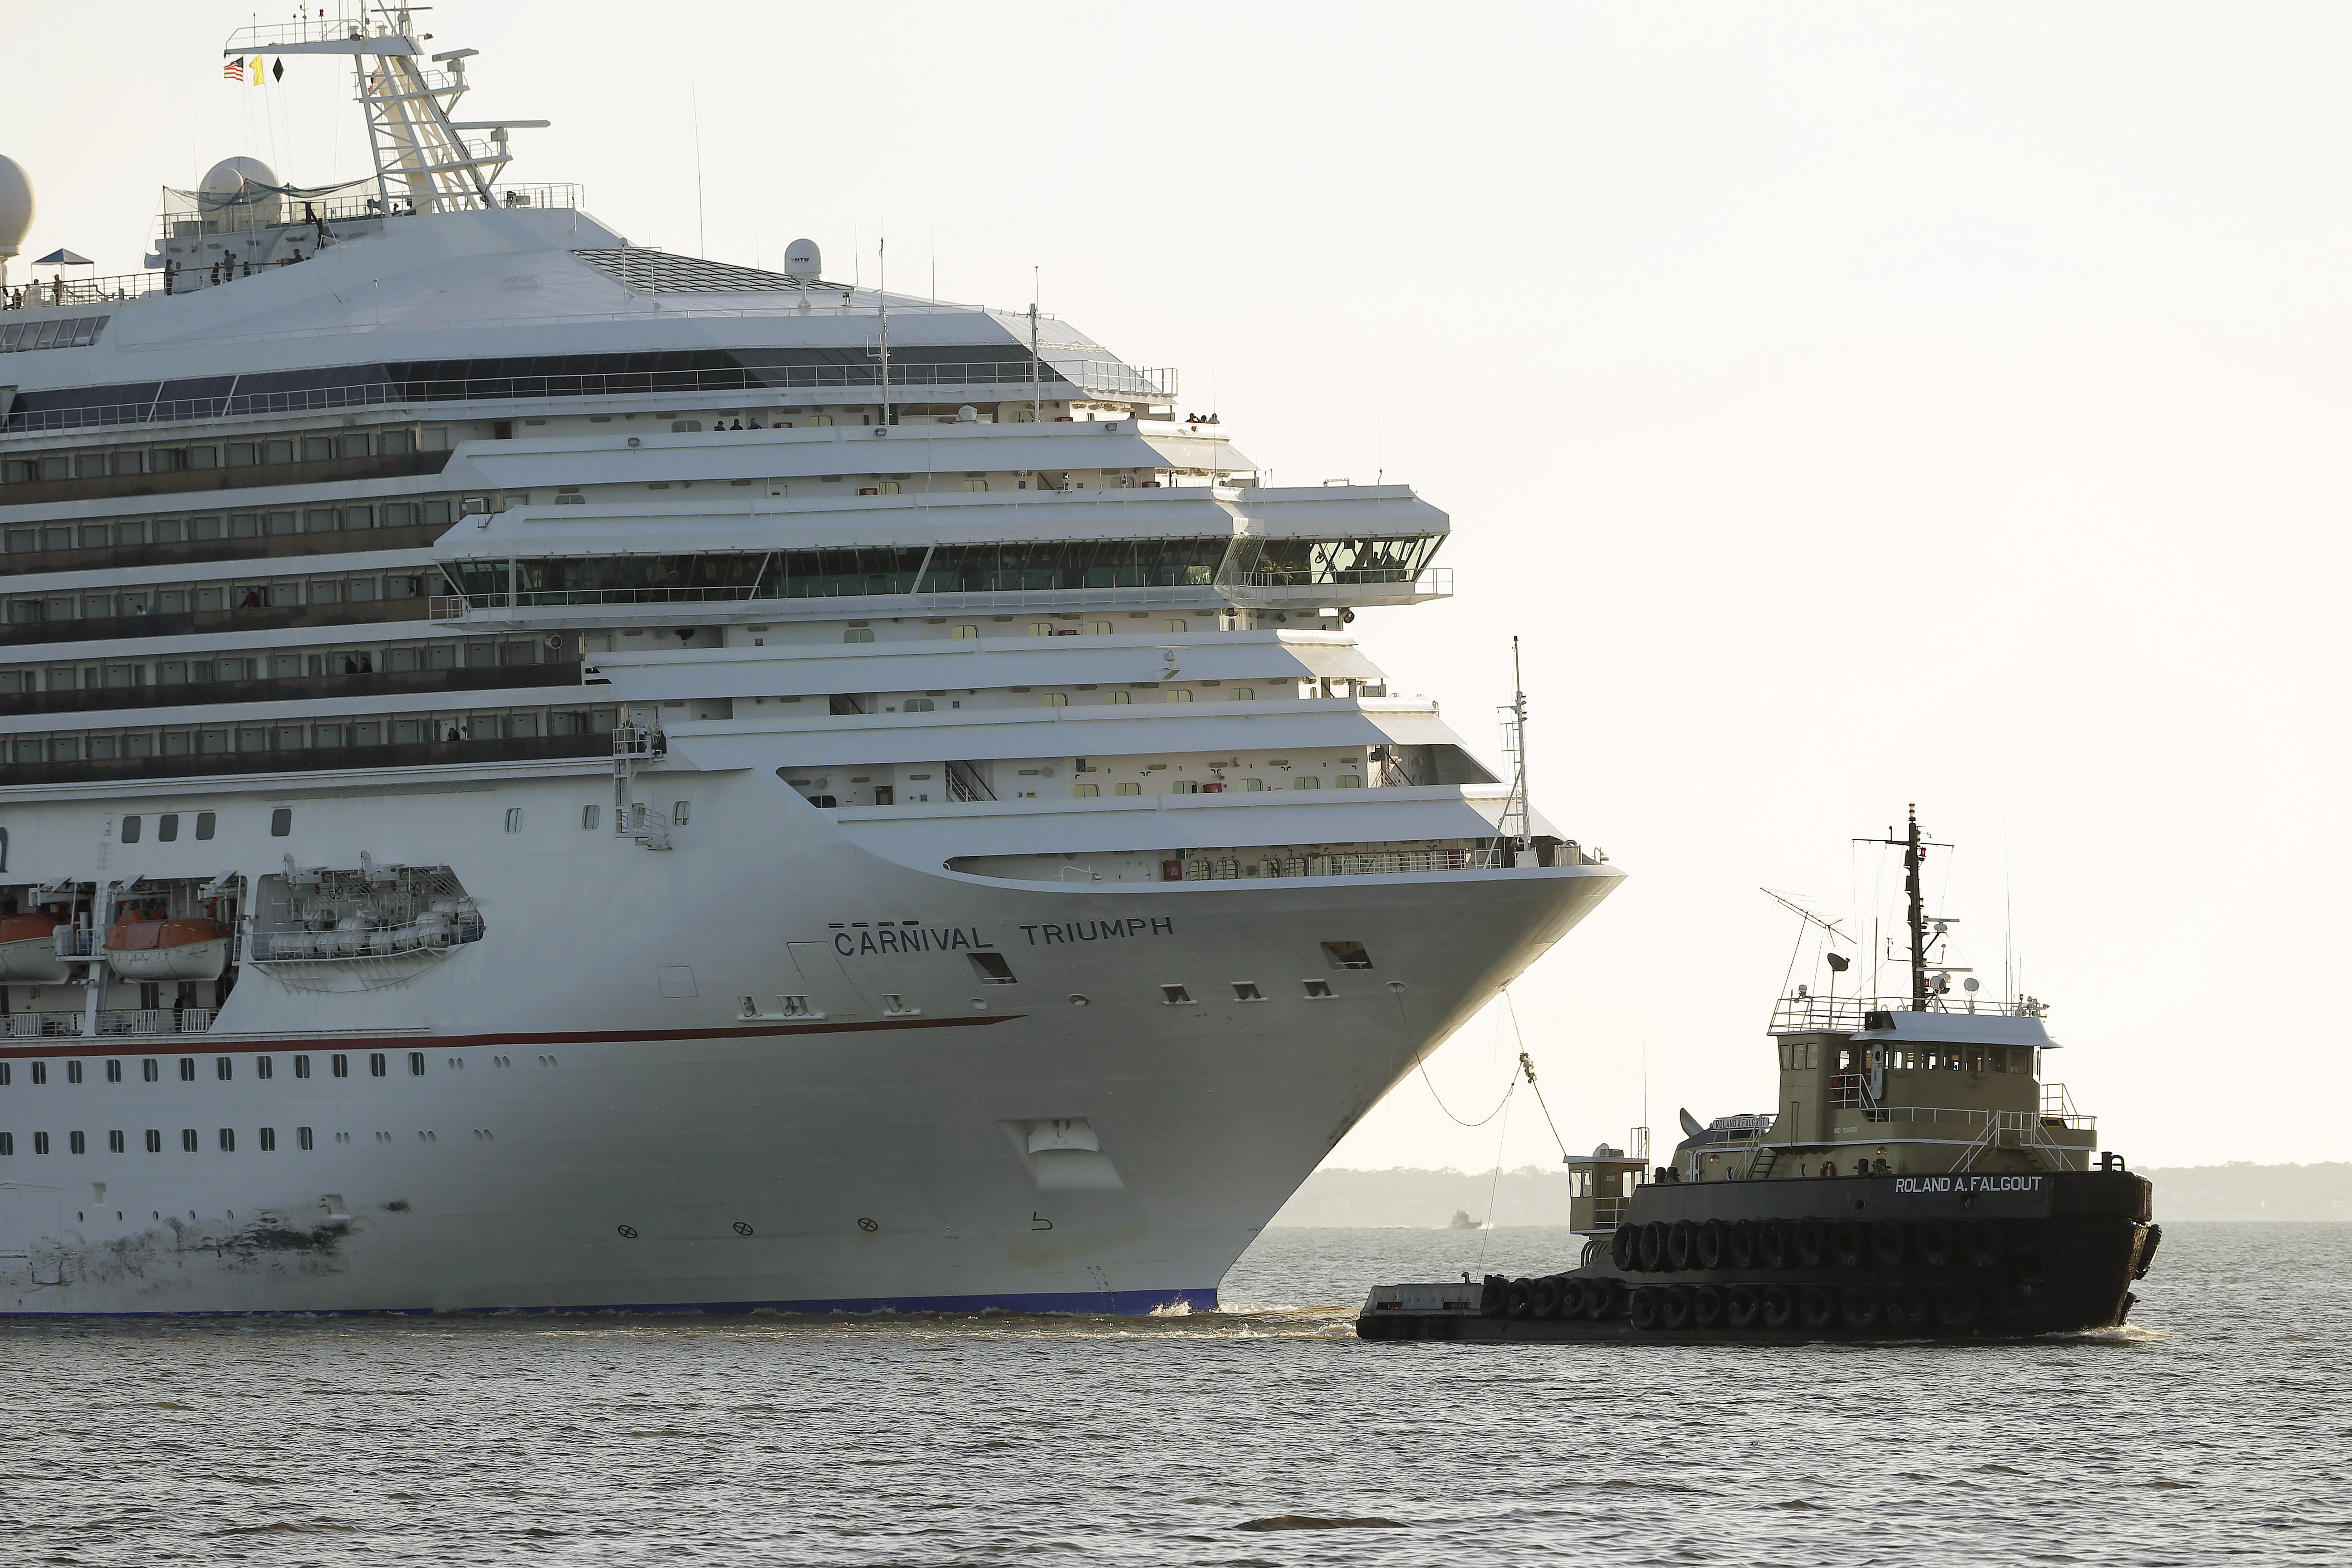 carnival cruise ship passengers have little cause to sue